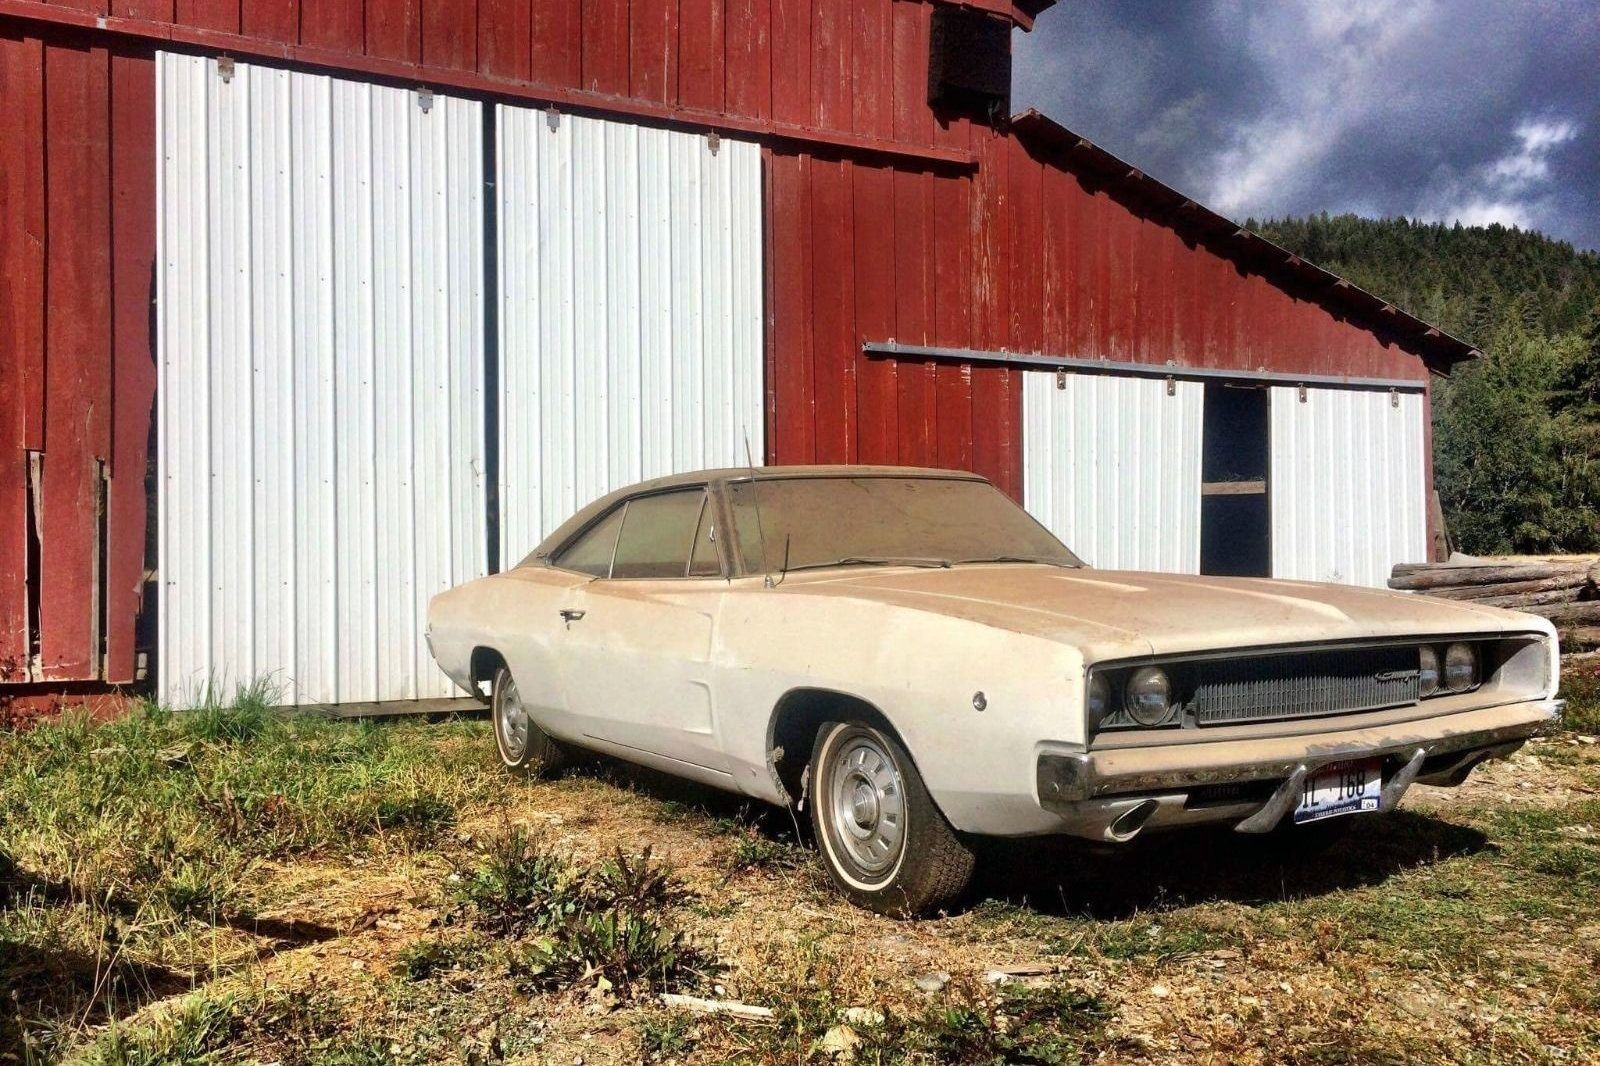 Barn Fresh Mopar: 1968 Dodge Charger - http://barnfinds.com/barn ...